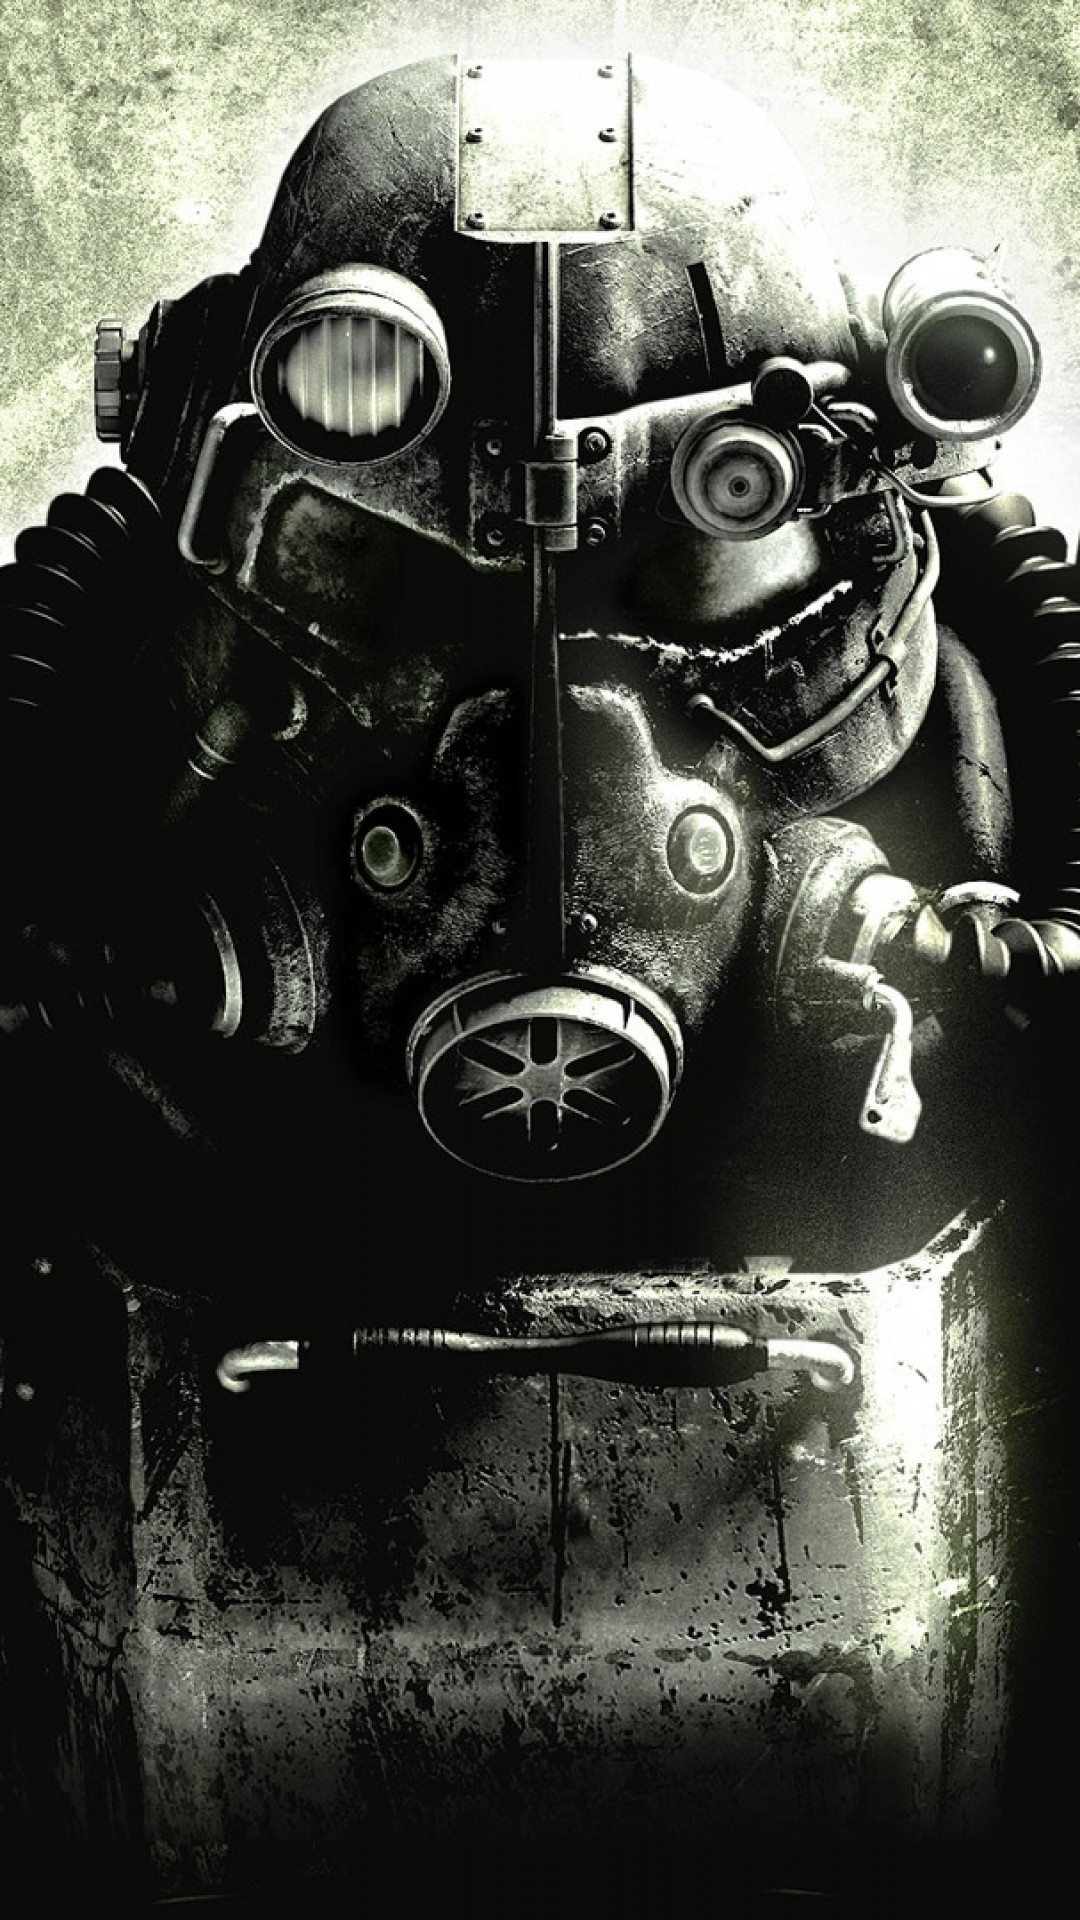 Nuka Cola Hd Wallpaper Fallout 3 Wallpapers 68 Images